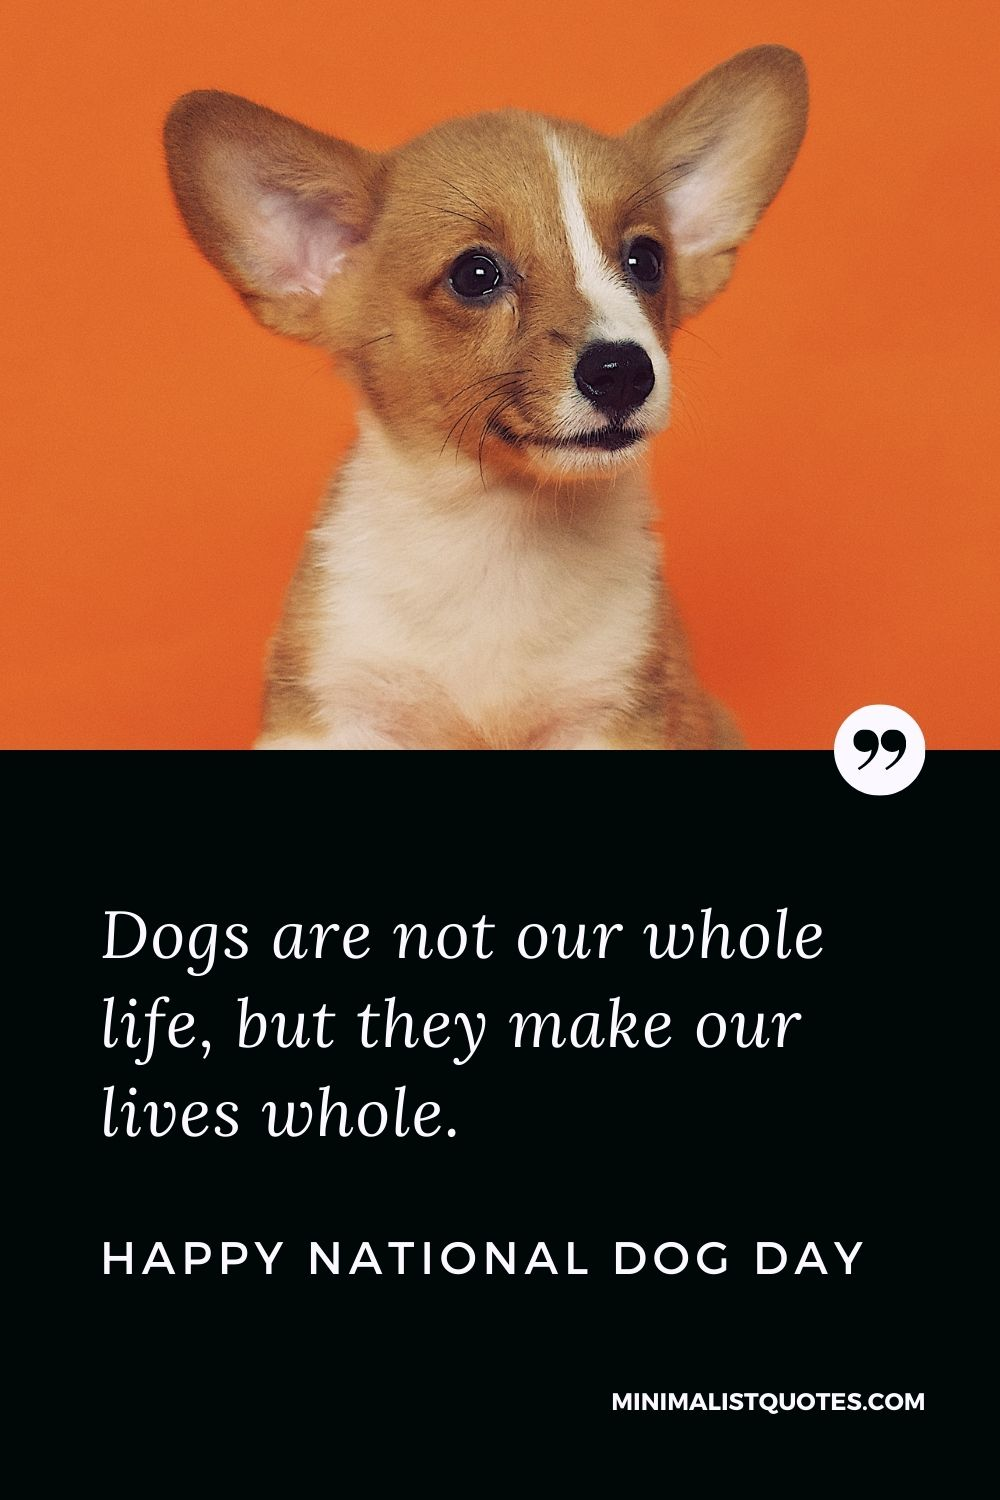 National dog day Quote, Wish & Message With Image: Dogs are not our whole life, but they make our lives whole. Happy National Dog Day!